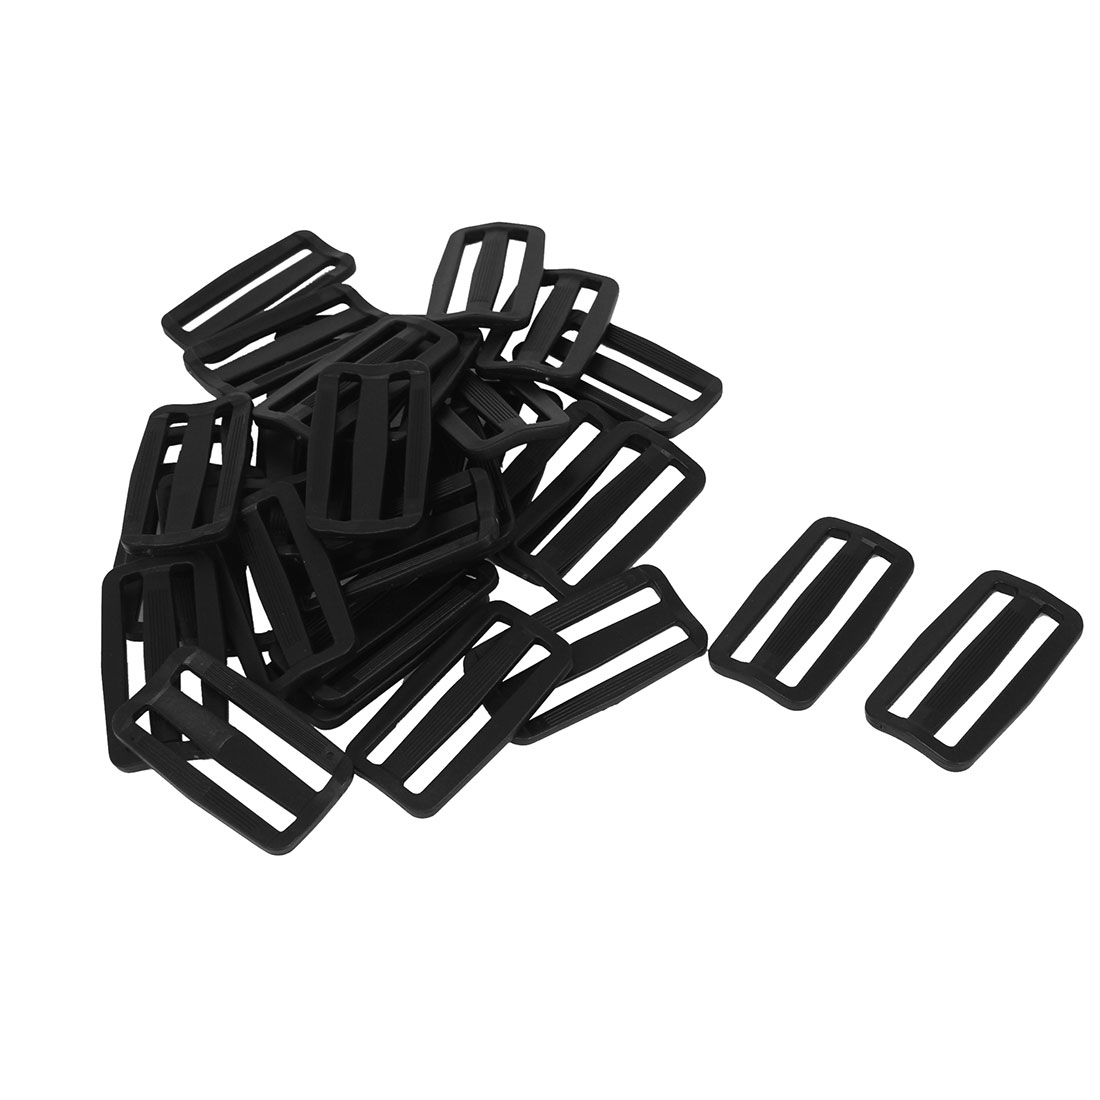 50 Pcs Black Hard Plastic Slide Rectangle Buckle Luggage Bag Replacement 5.0CM